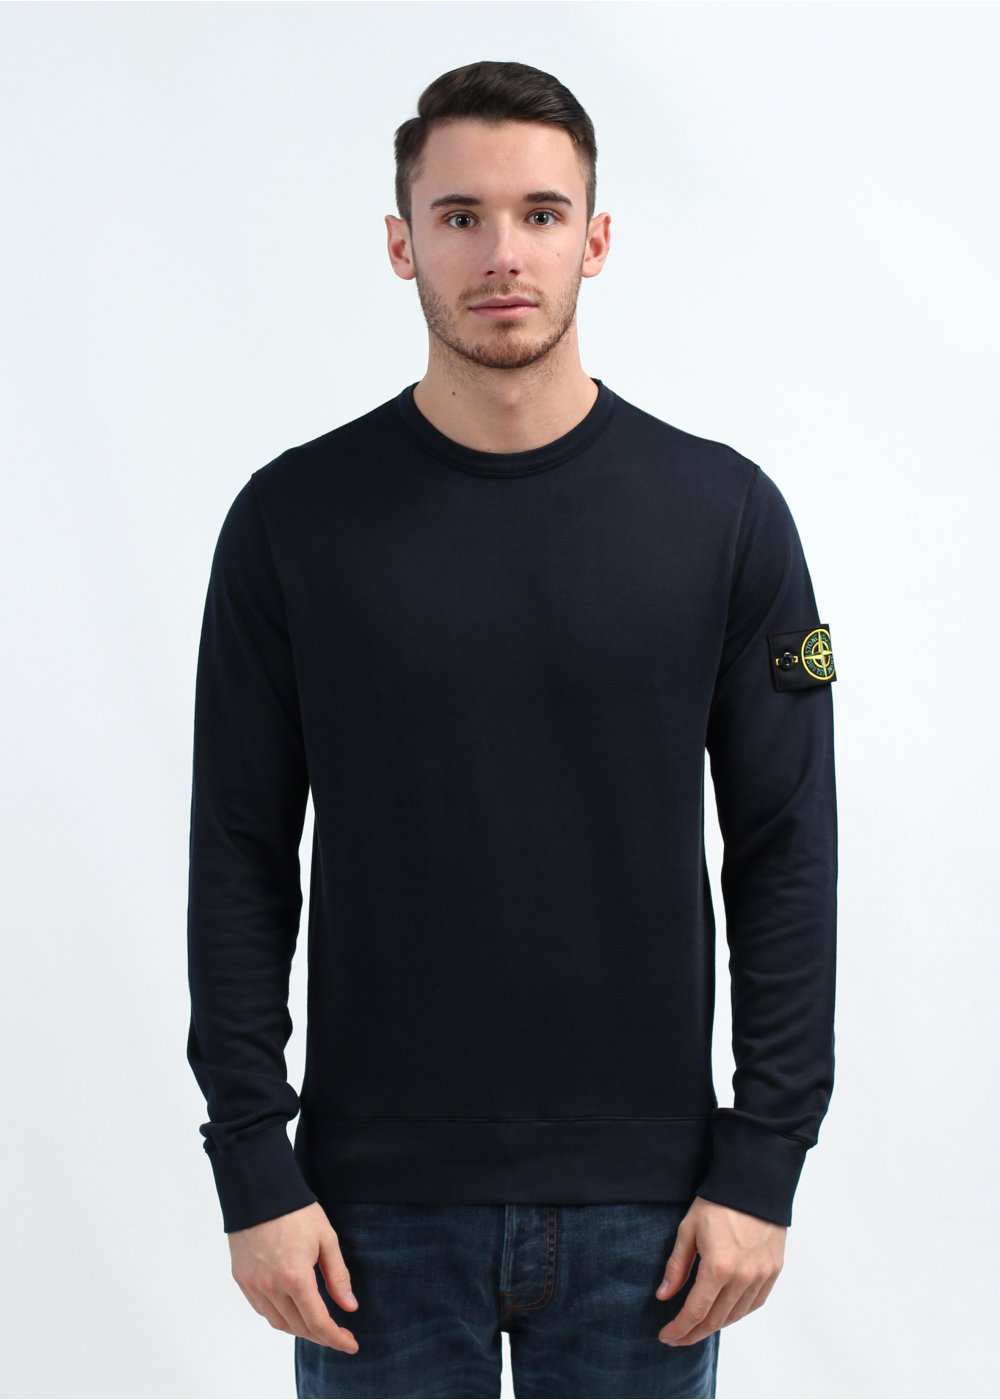 triads stone island seamed crew neck sweatshirt navy. Black Bedroom Furniture Sets. Home Design Ideas